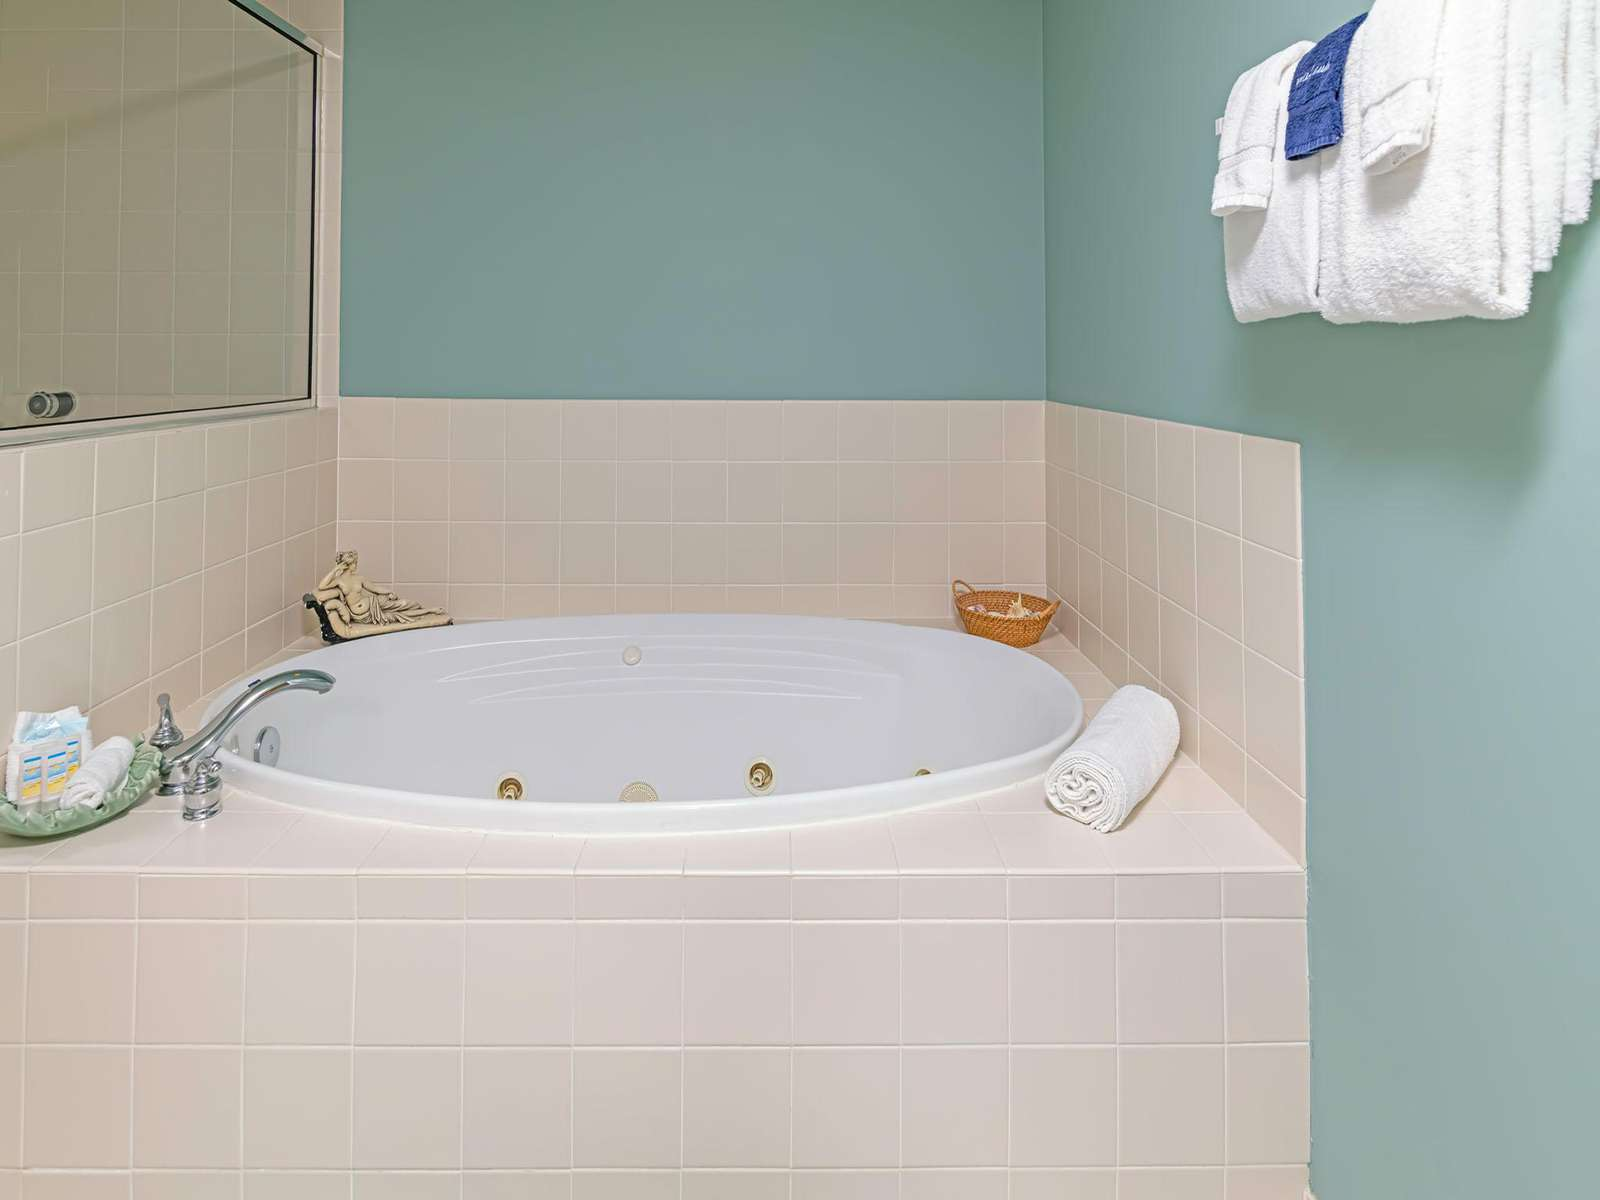 Large jetted tub to soak your stress away!